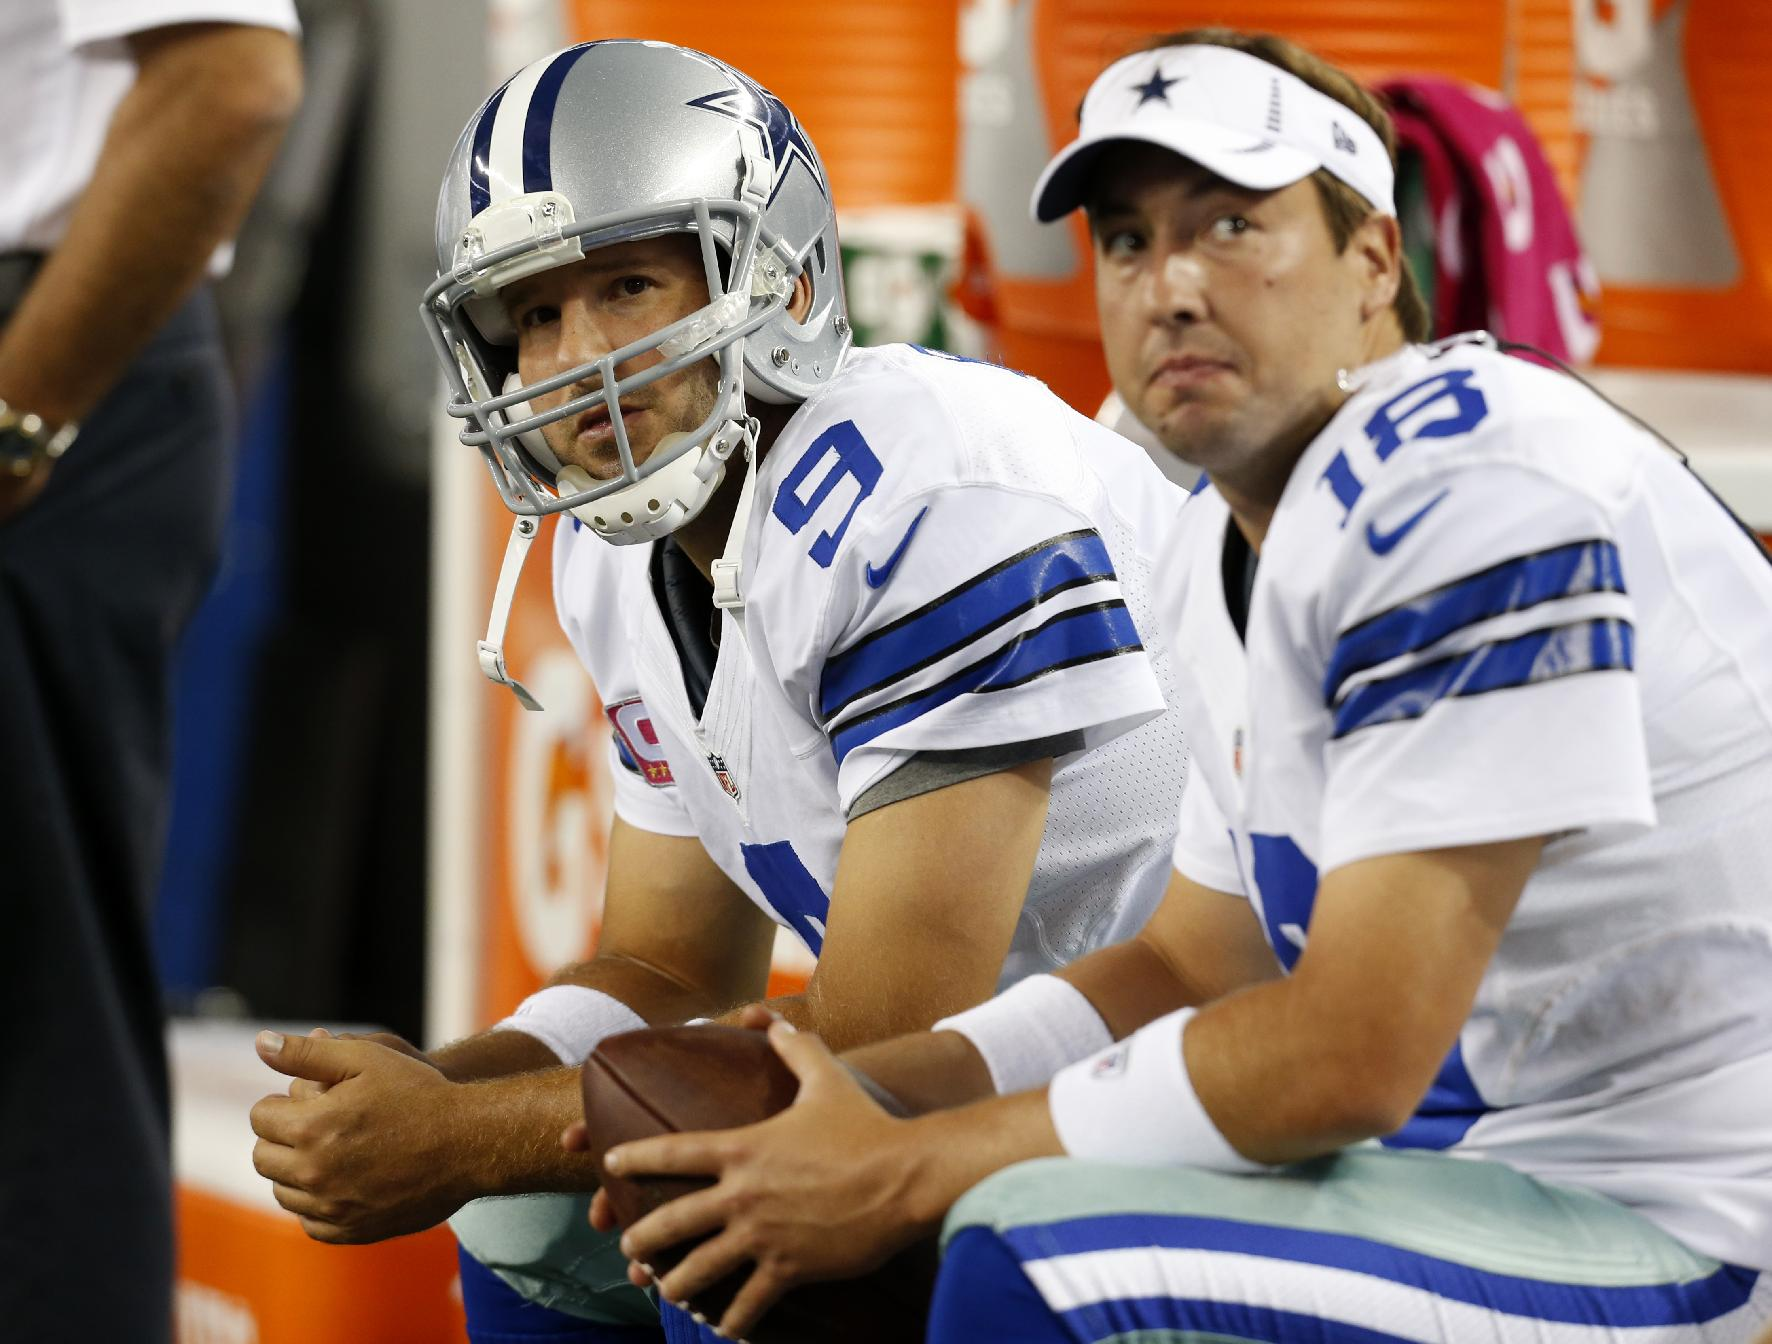 In this Monday Oct. 1, 2012 file photo, Dallas Cowboys' Tony Romo (9) and Kyle Orton (18) sit on the bench during an NFL football game against the Chicago Bears in Arlington, Texas. The Dallas Cowboys are releasing Kyle Orton after their backup quarterback missed all the offseason workouts amid reports that he was considering retirement, Tuesday, July 15, 2014